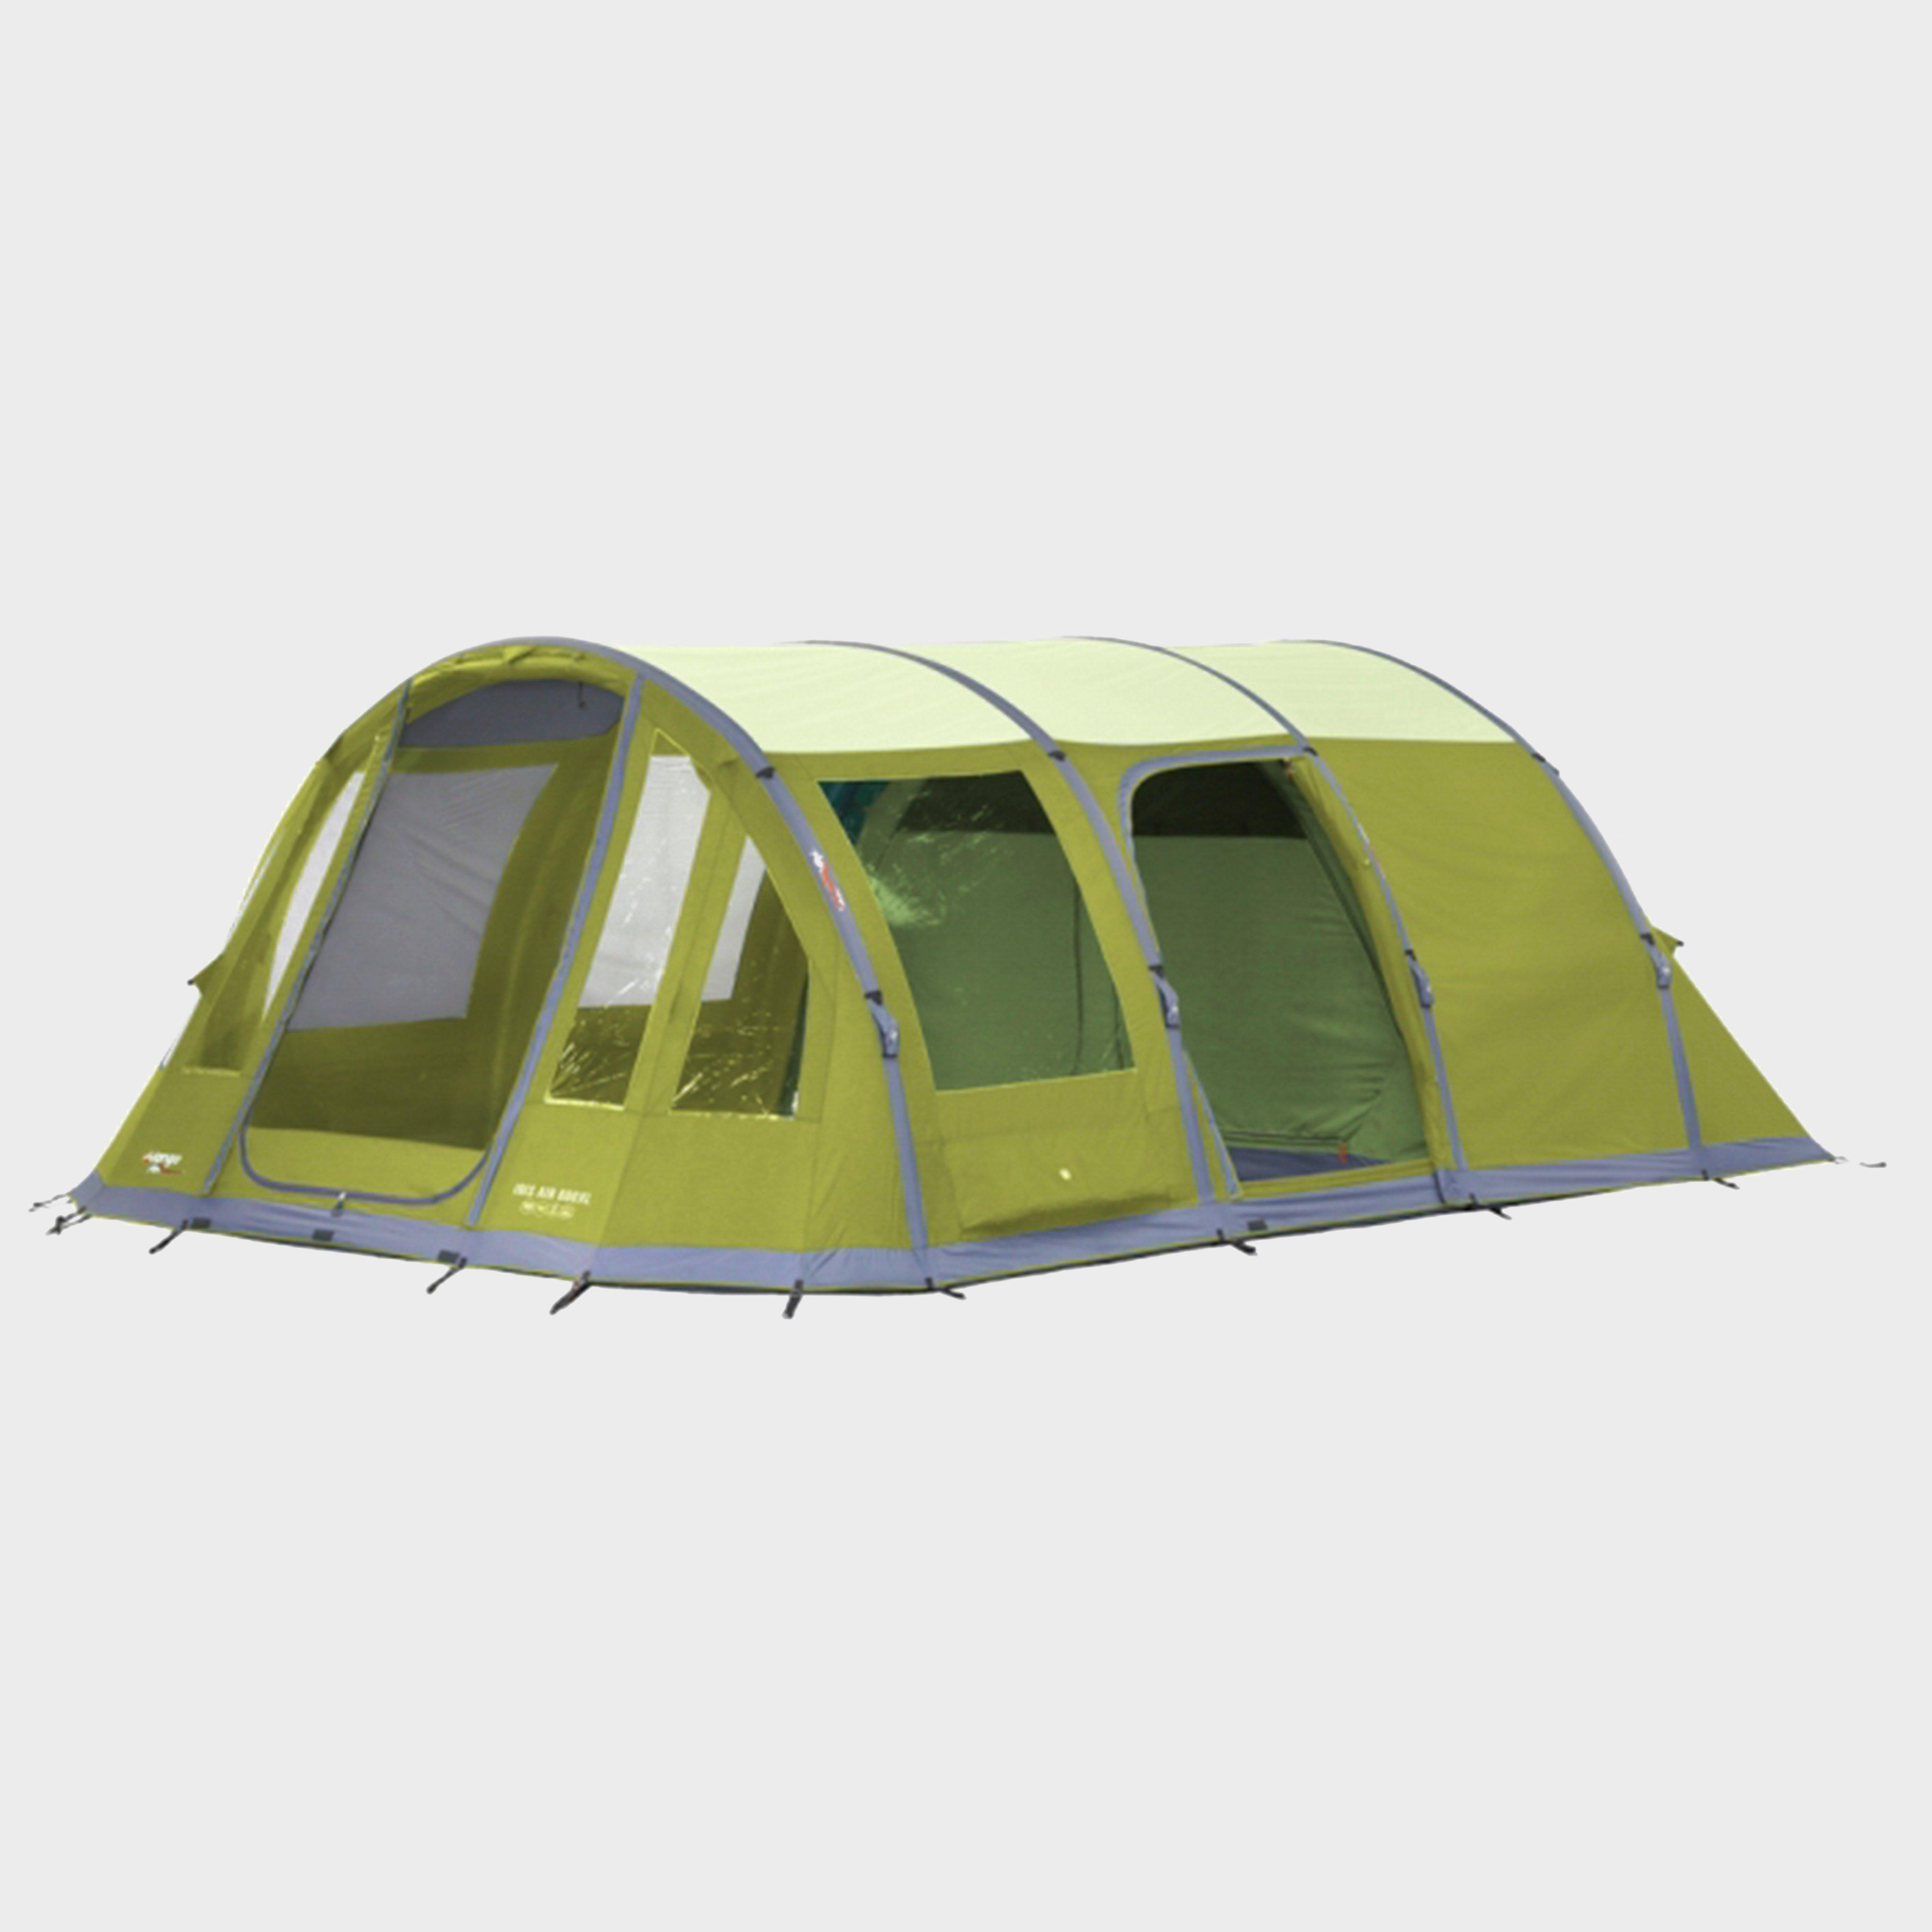 Vango Vango Iris Air 600 XL Tent - Green, Green